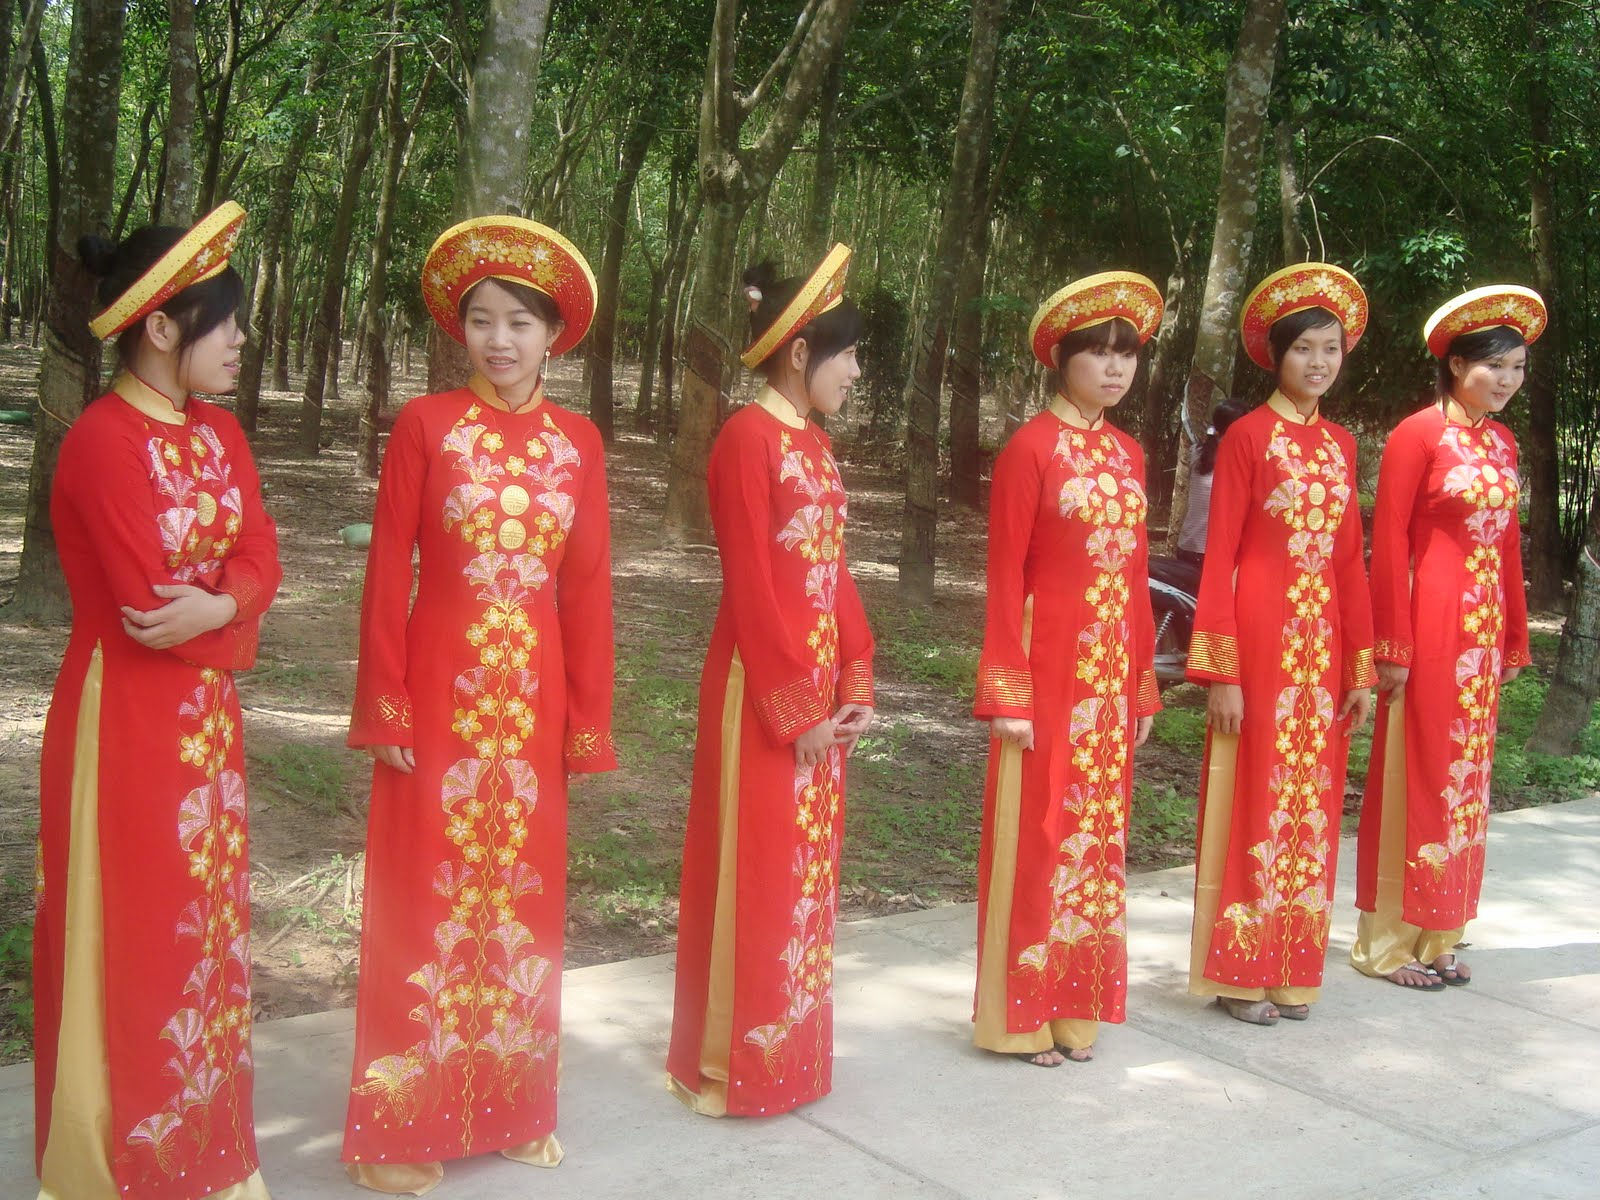 viet se dress ao dai atilde o d atilde nbsp i vietnam national costume girl in vietnam dress ao dai